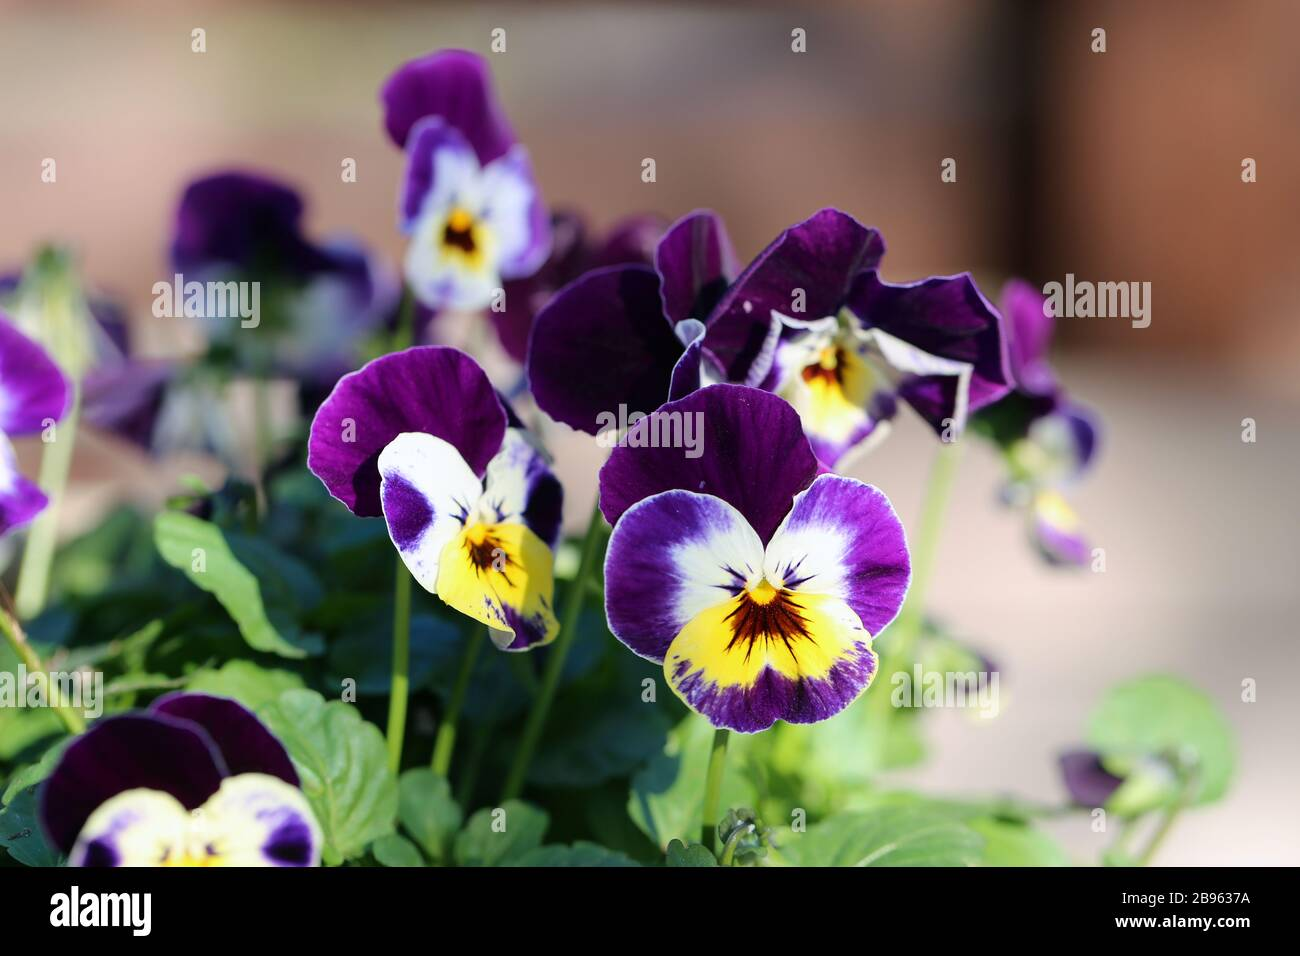 Purple, yellow and white tricolored pansy flowers in a macro image. You can see multiple, pretty violet flowers in a closeup with soft background. Stock Photo